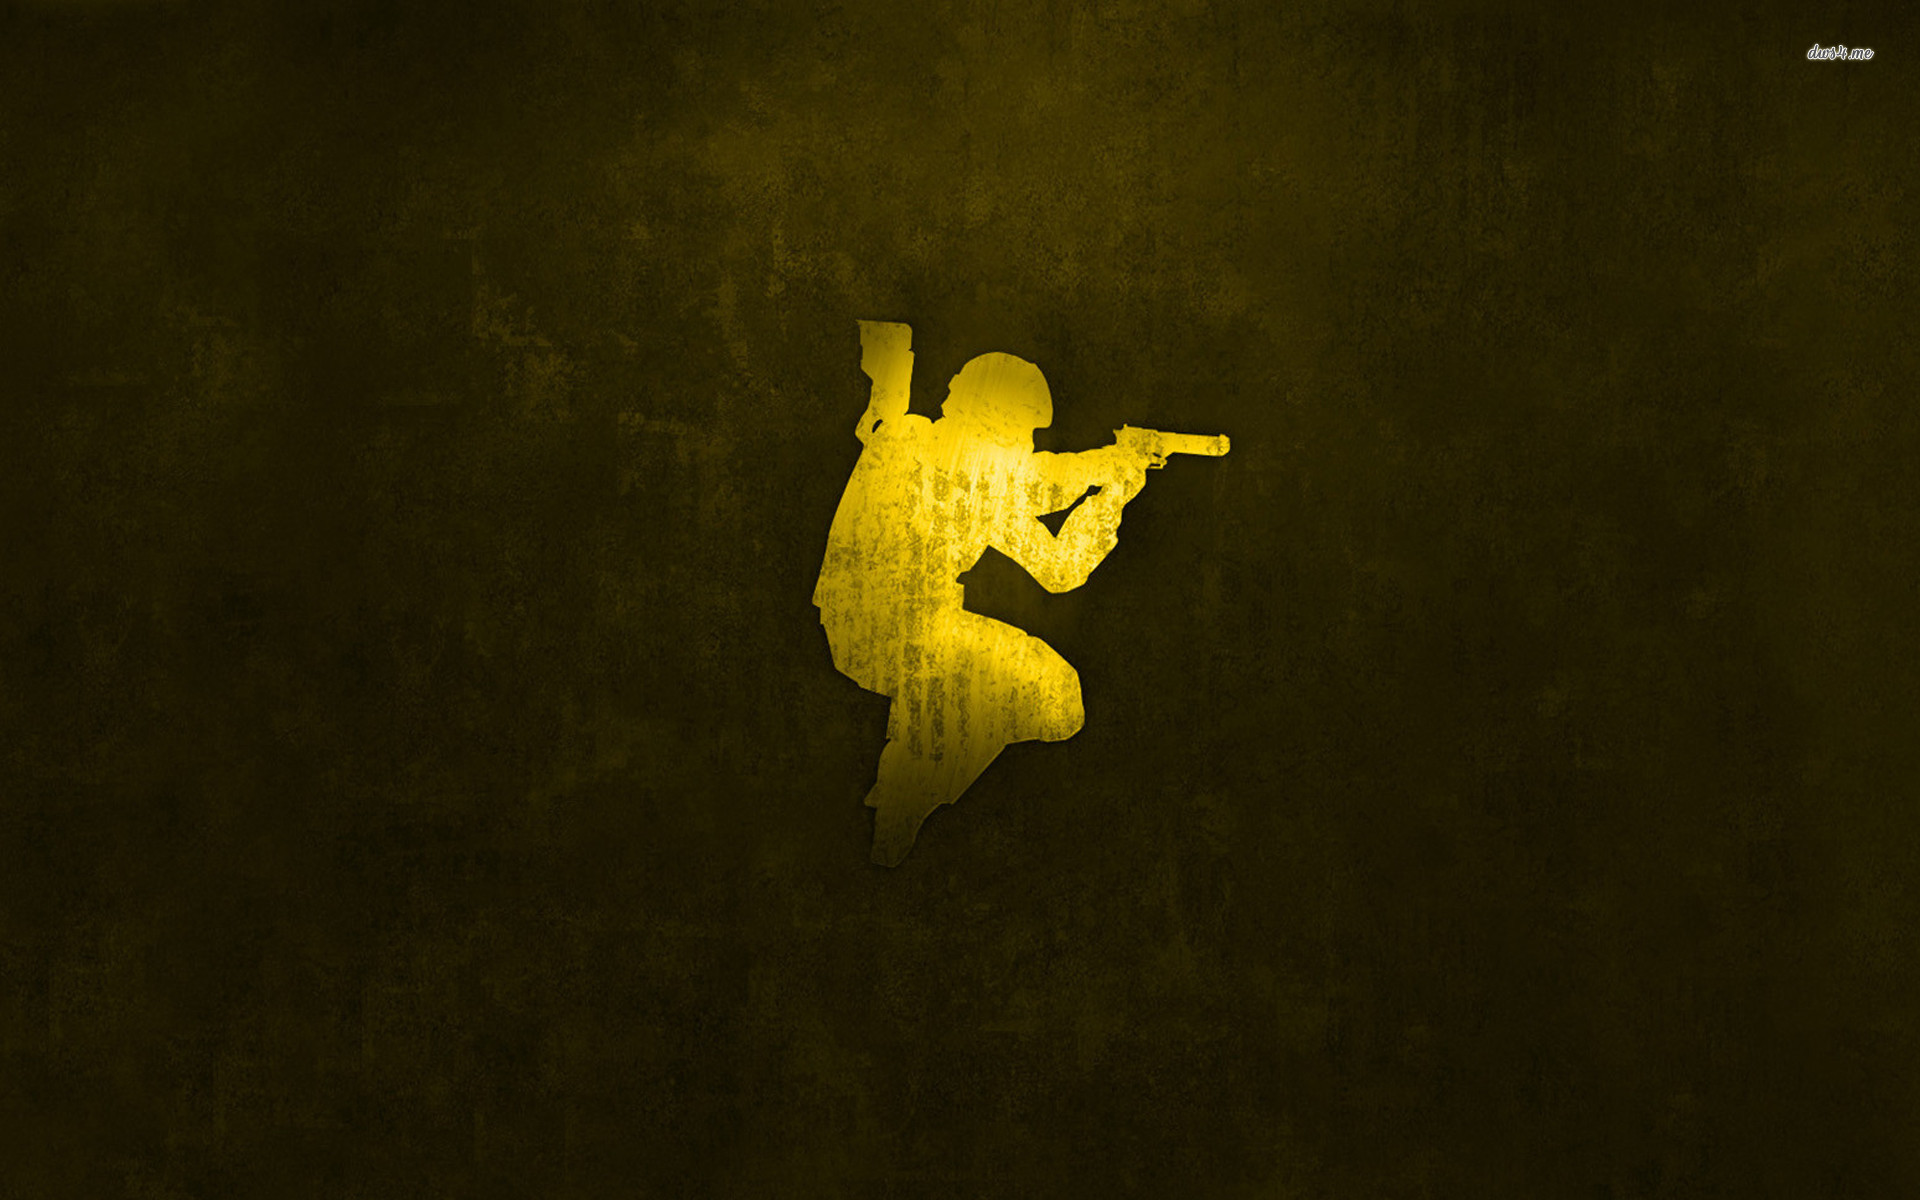 1920x1200 Counter Strike Wallpaper Counter Strike Wallpaper Counter Strike Wallpaper  ...